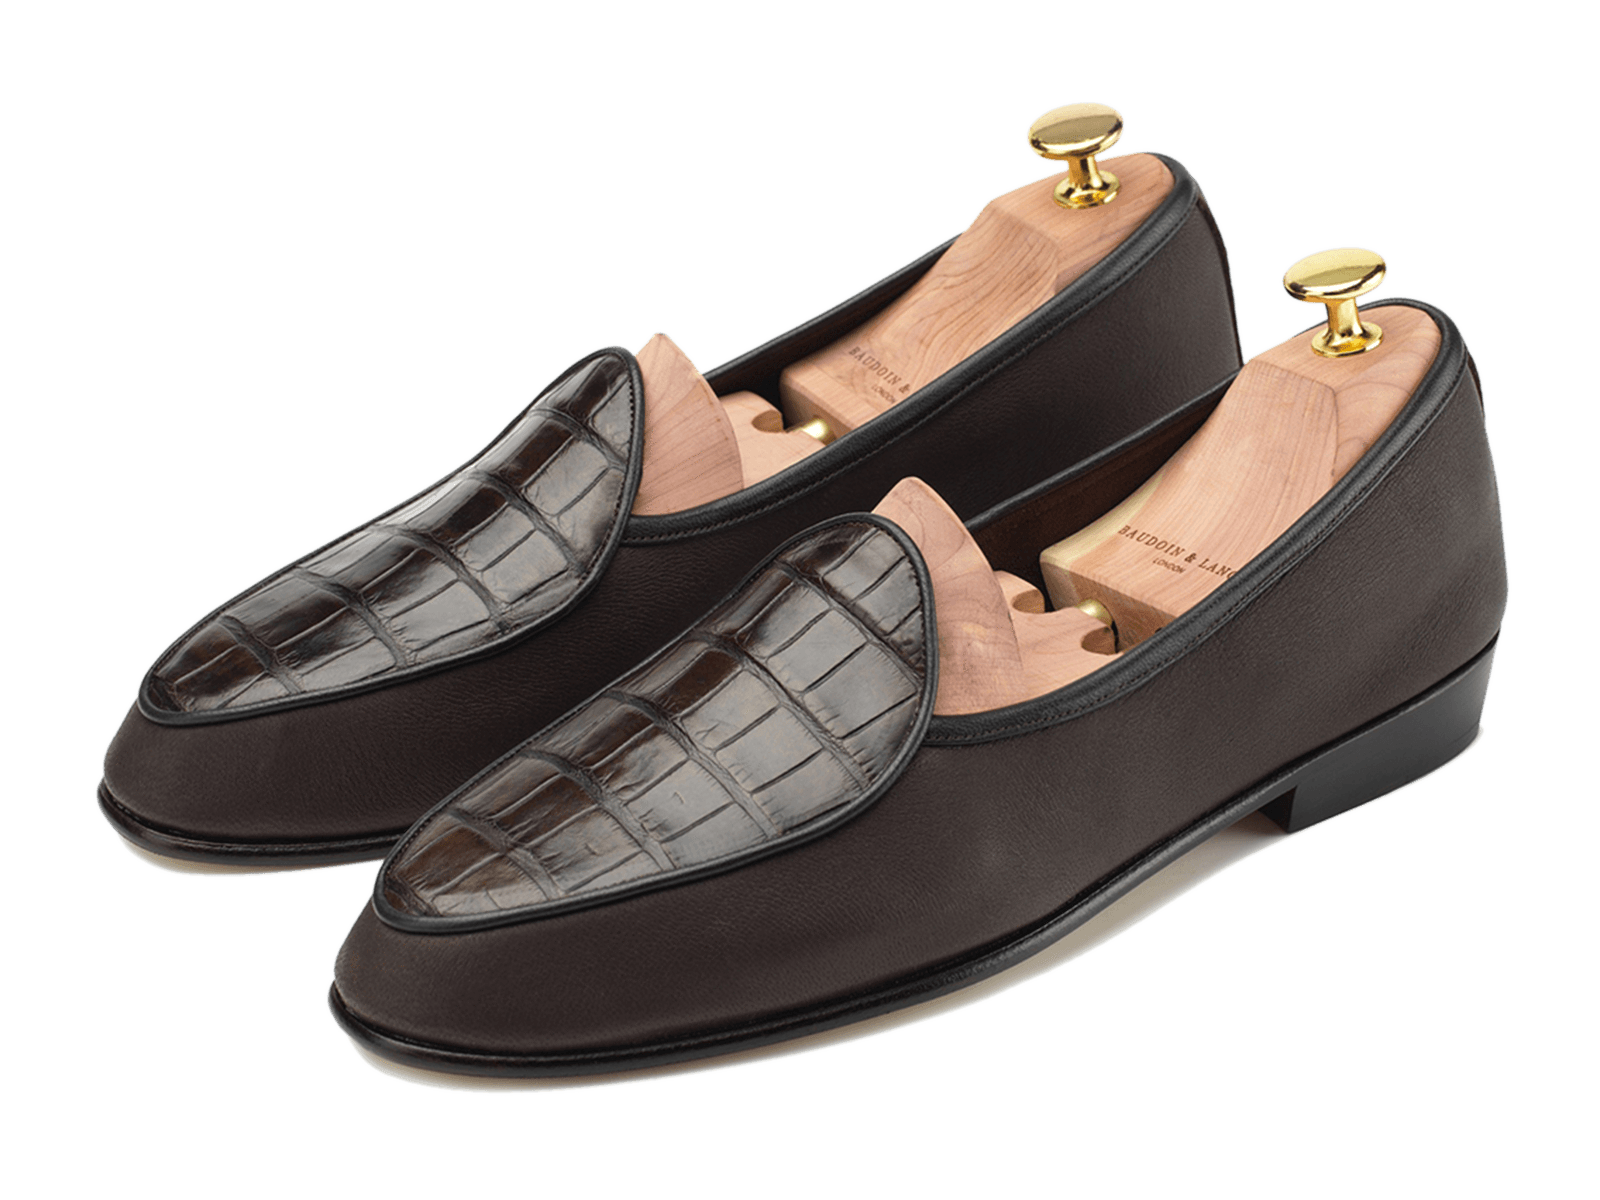 Sagan Classic Precious Leathers in Dark Brown Deerskin and Alligator